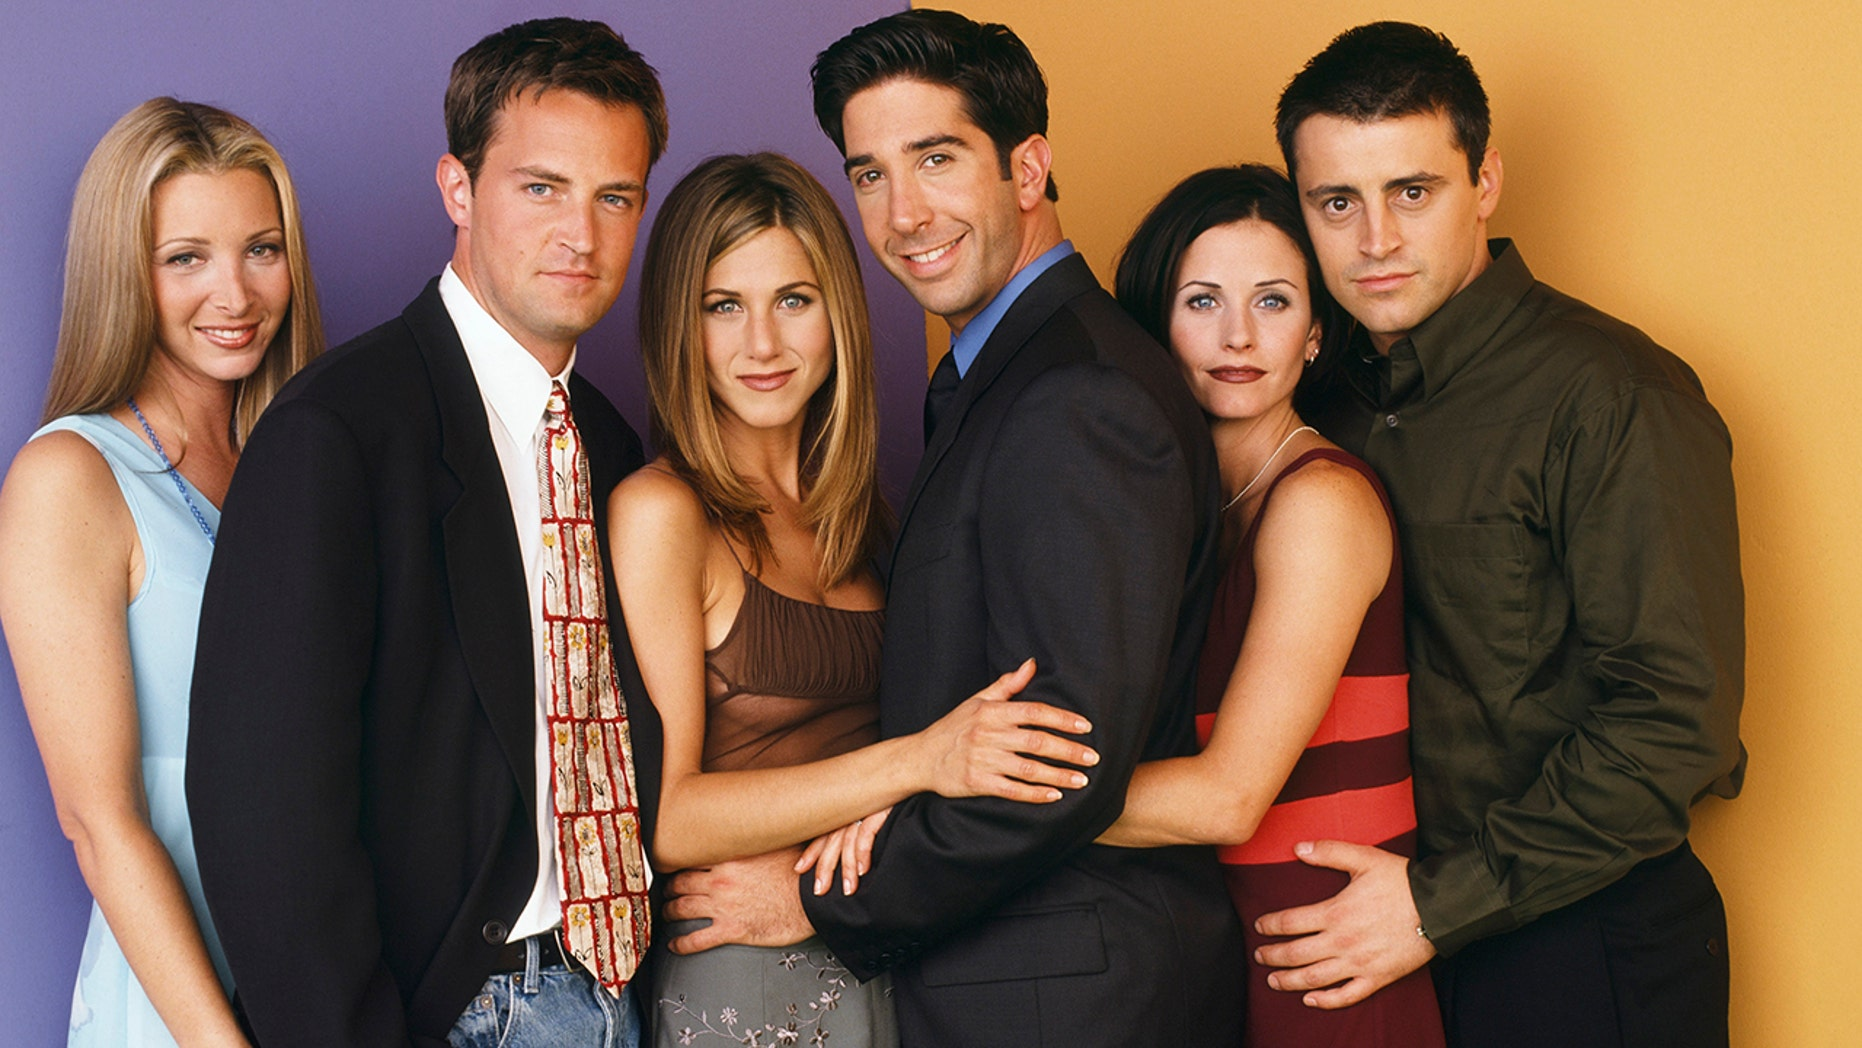 "The cast of ""Friends"" pictured: (l-r) Lisa Kudrow as Phoebe Buffay, Matthew Perry as Chandler Bing, Jennifer Aniston as Rachel Green, David Schwimmer as Ross Geller, Courteney Cox as Monica Geller, Matt LeBlanc as Joey Tribbiani."